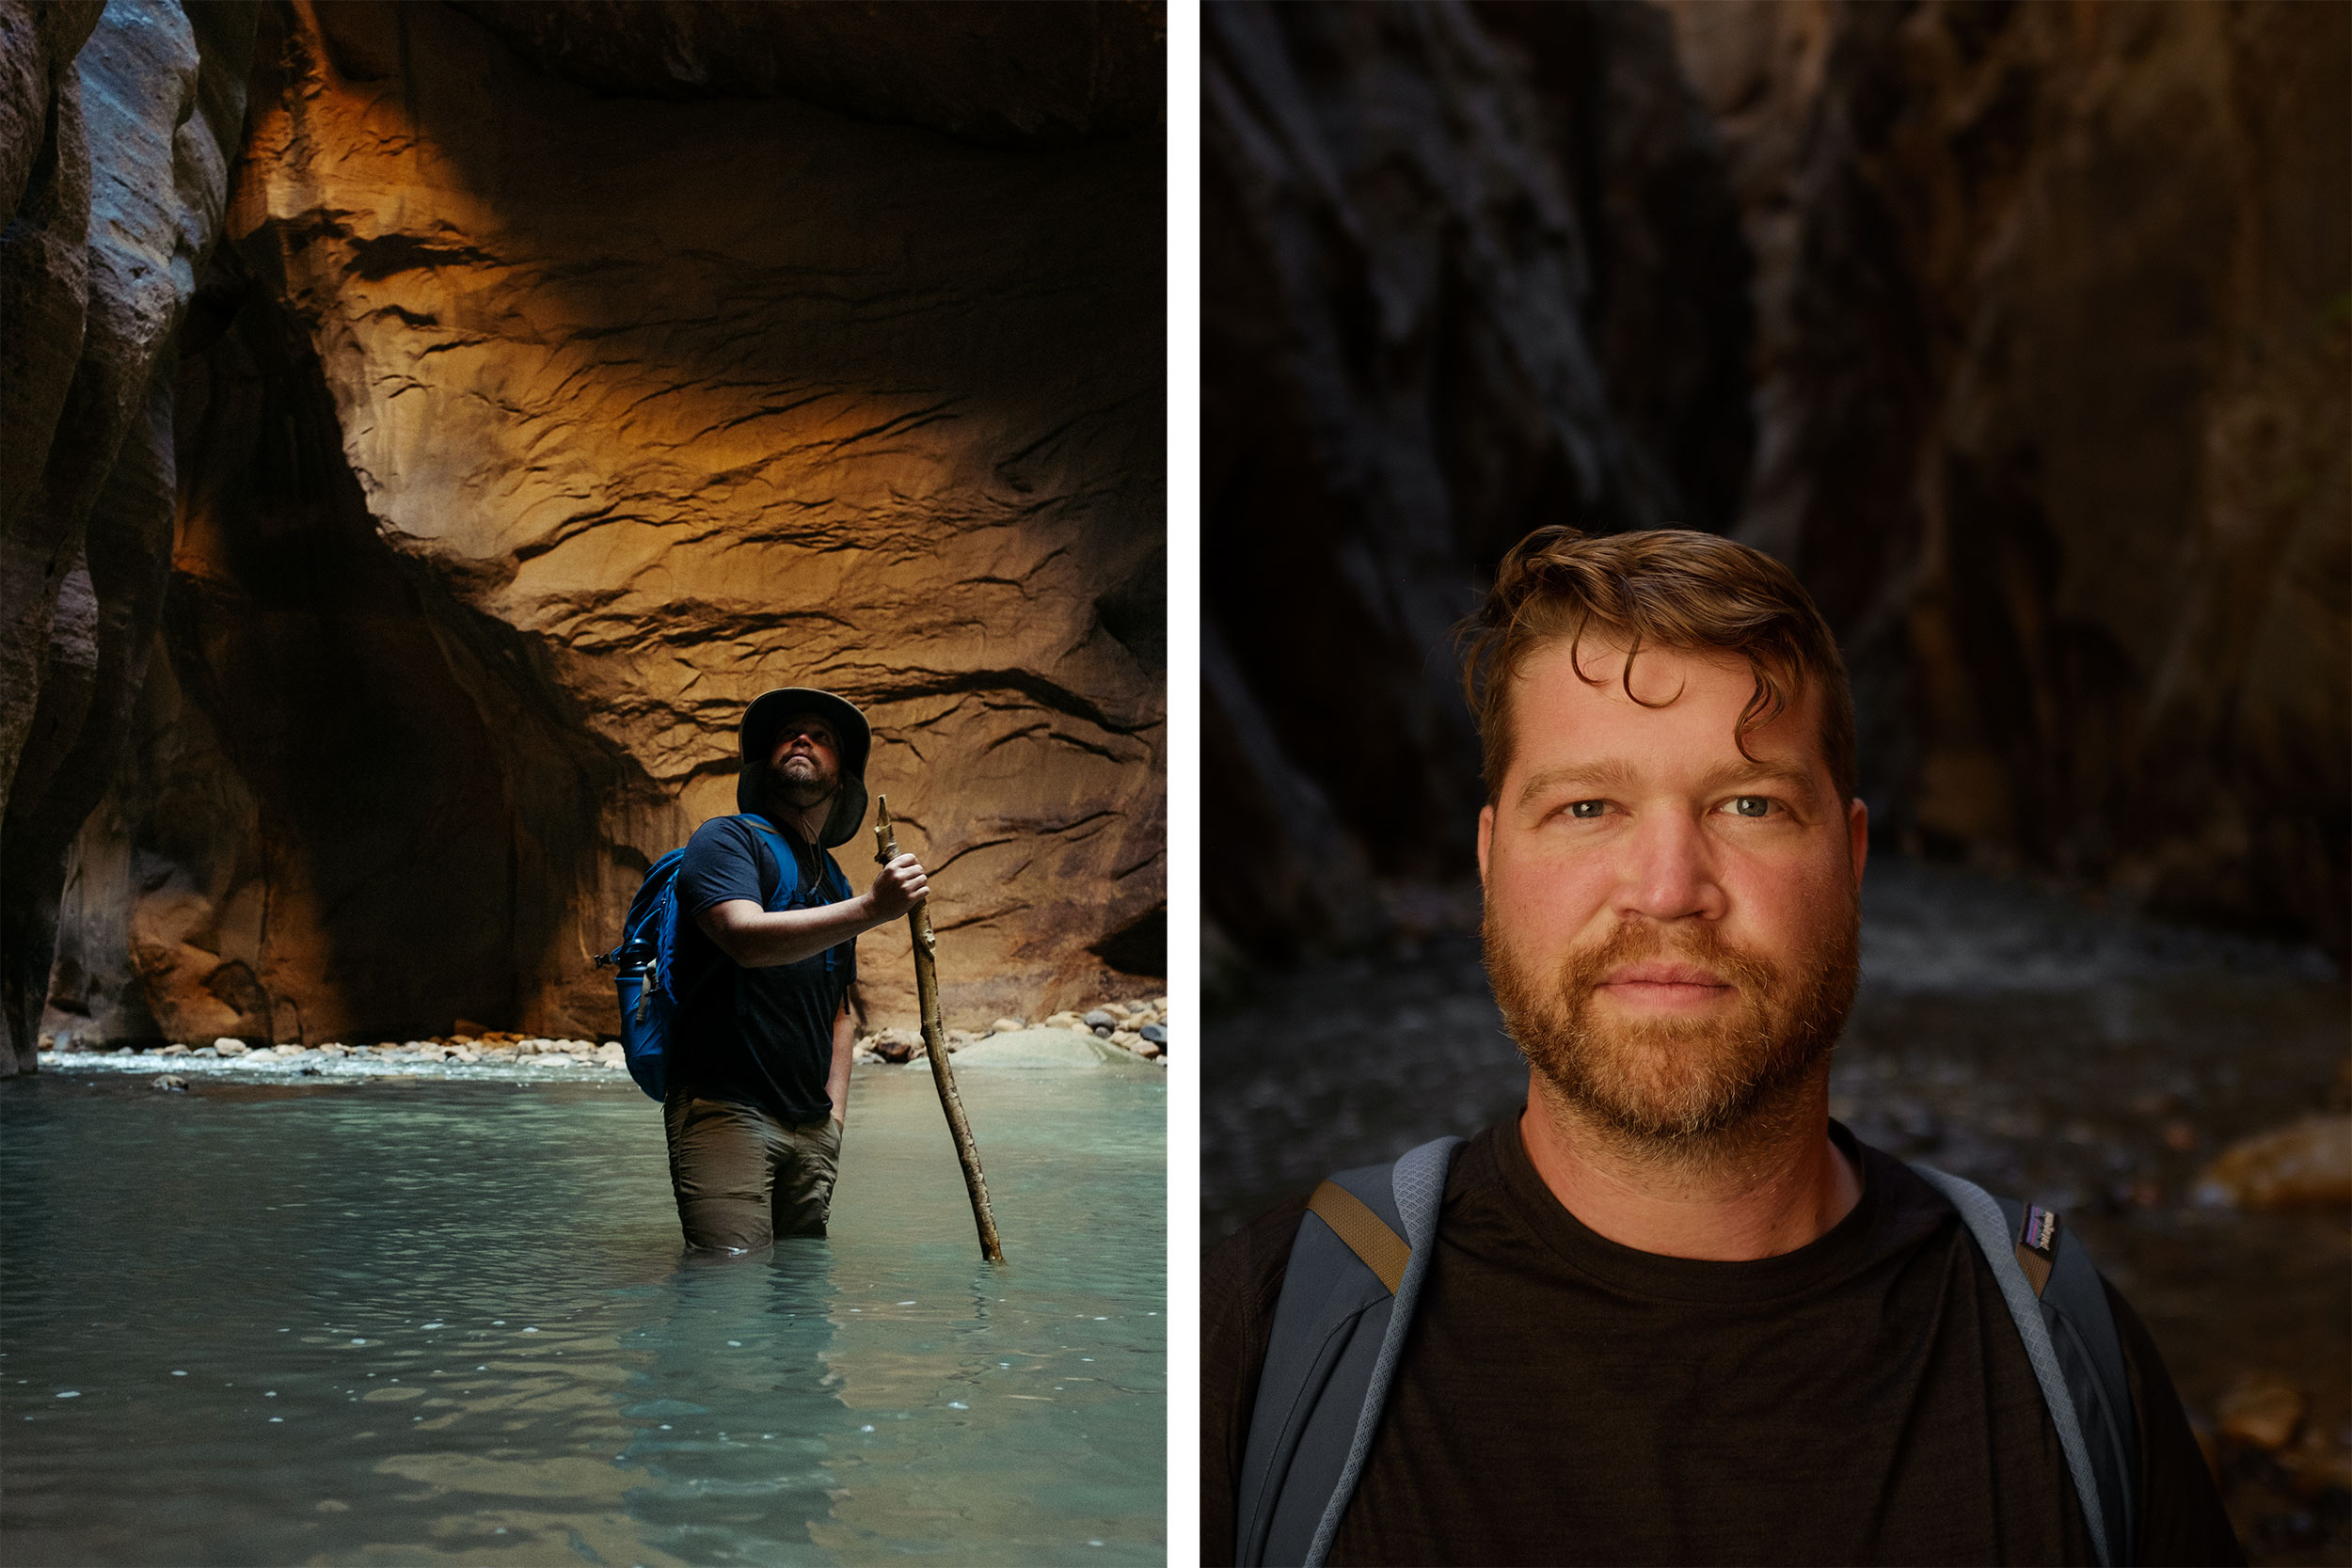 travel_portrait_zion_narrows_hiker-2035